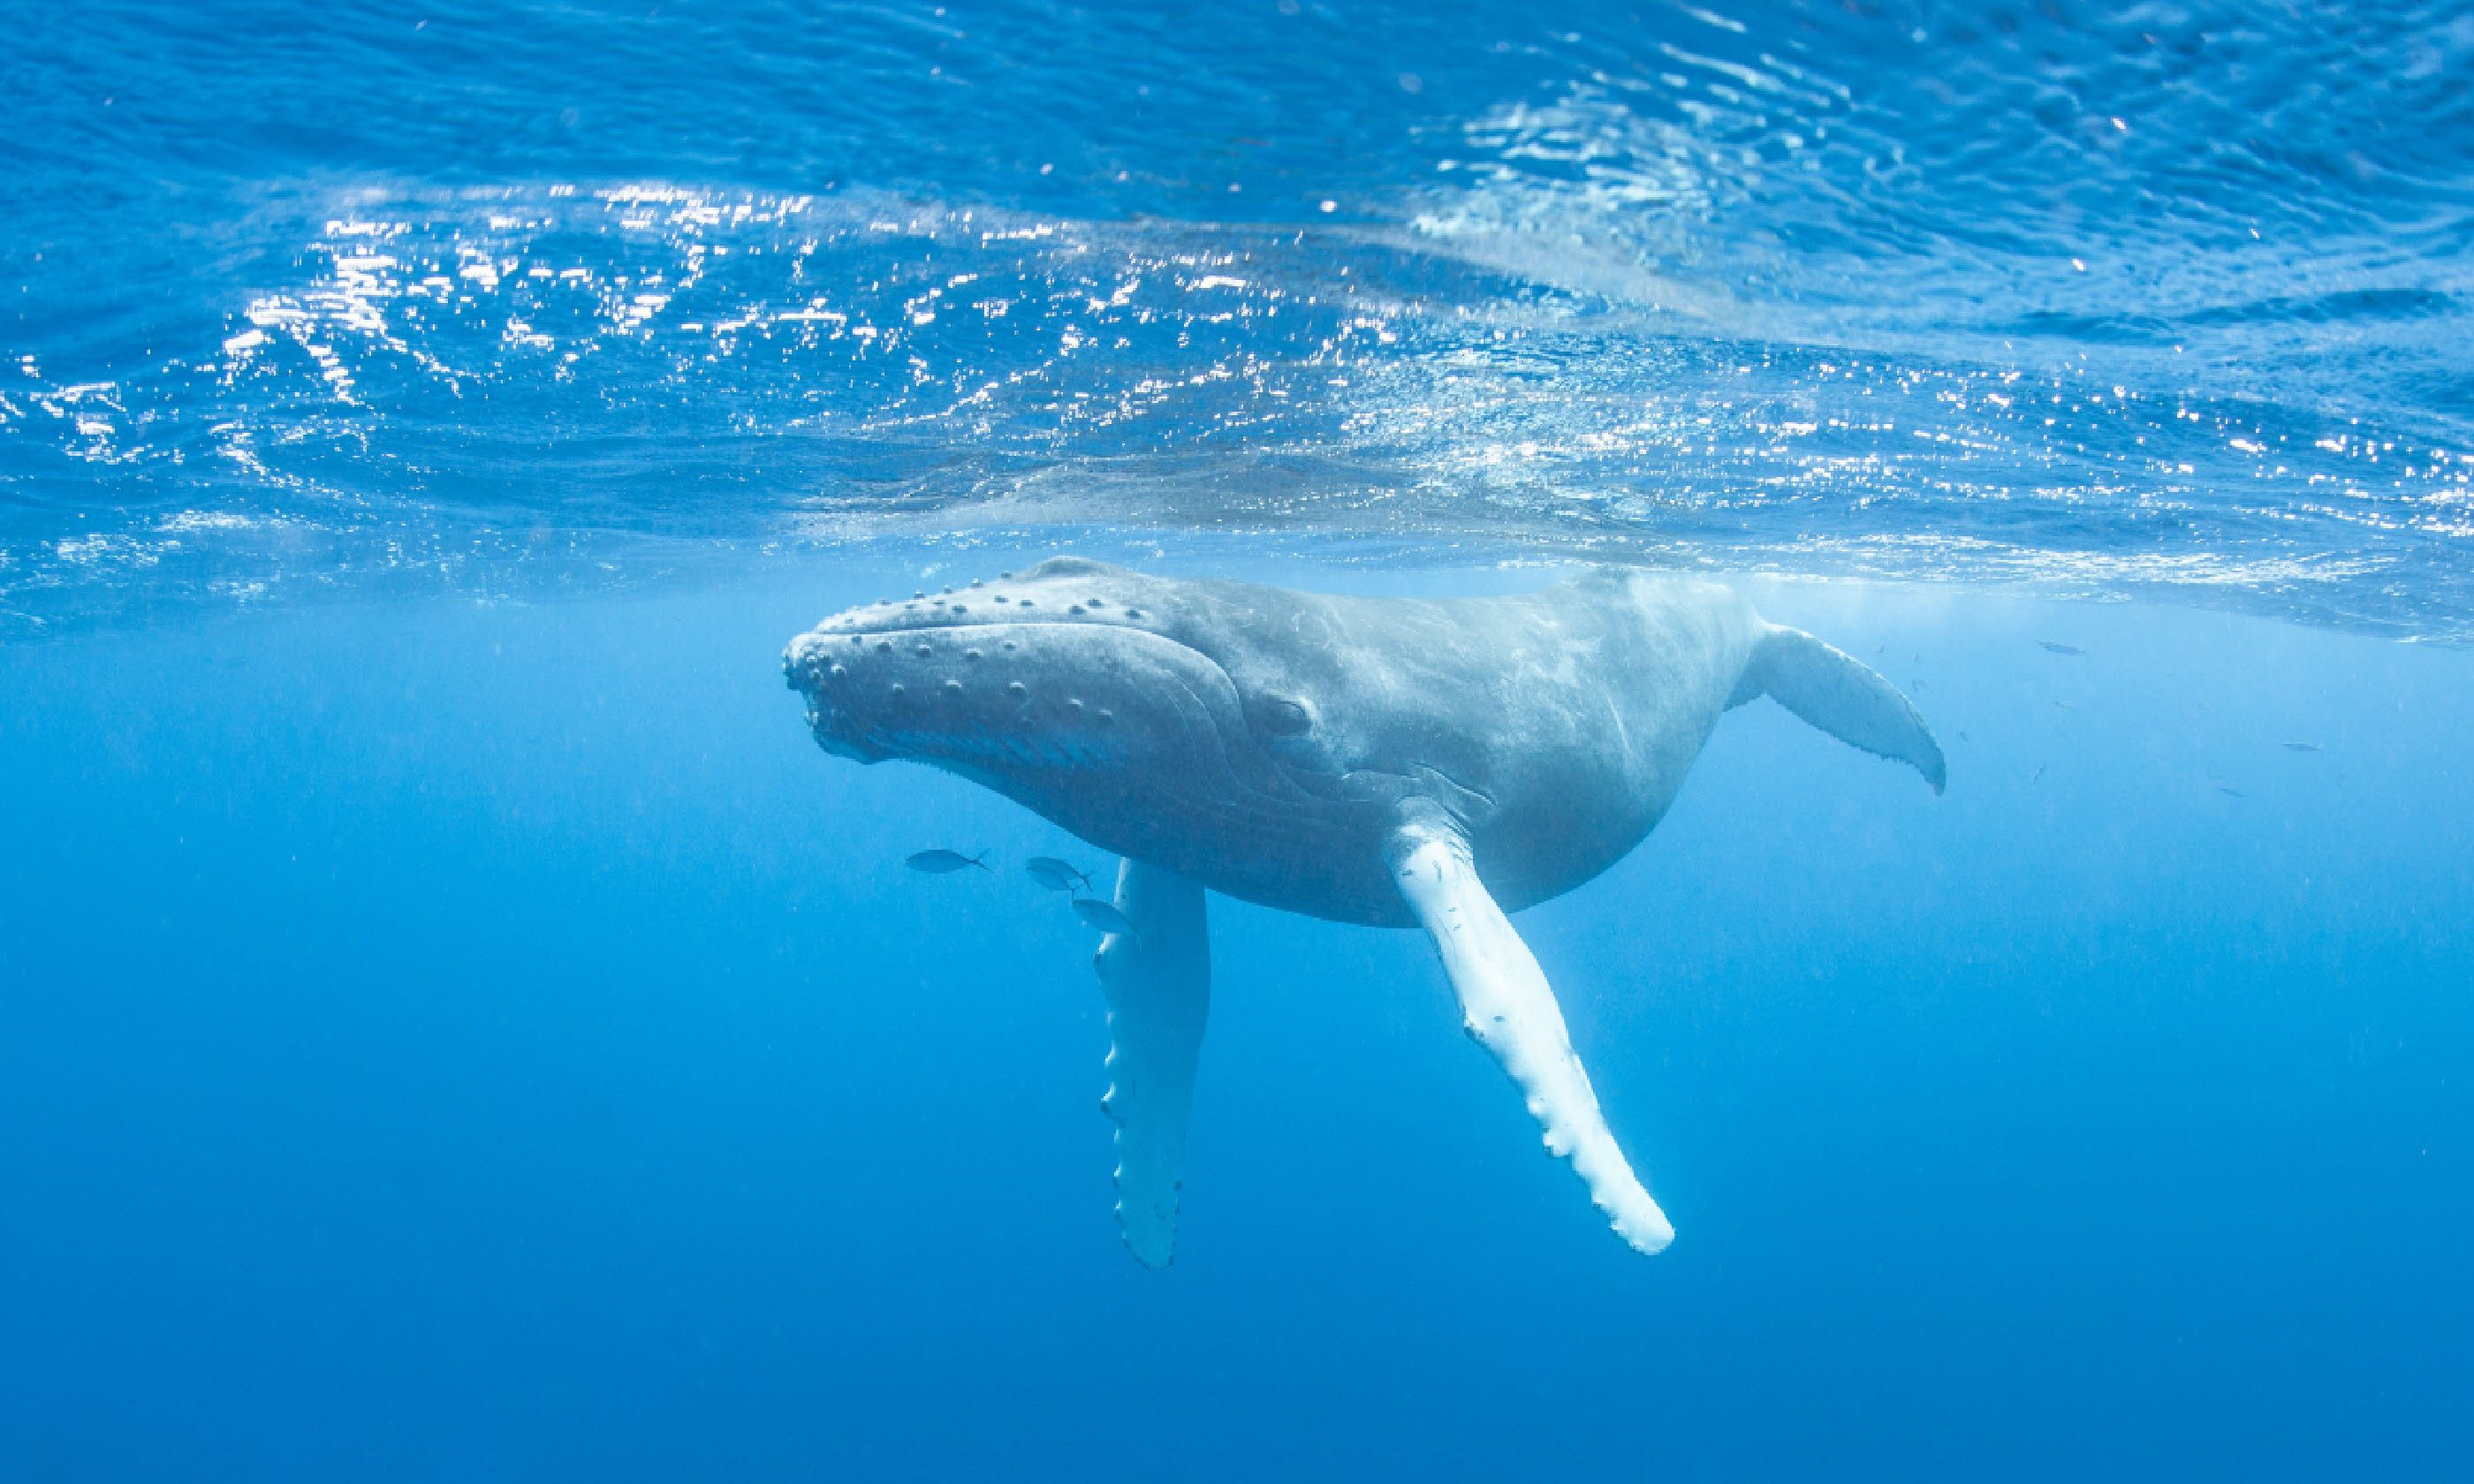 Ayoung Humpback whale swims at the surface of the Caribbean Sea (Shutterstock)